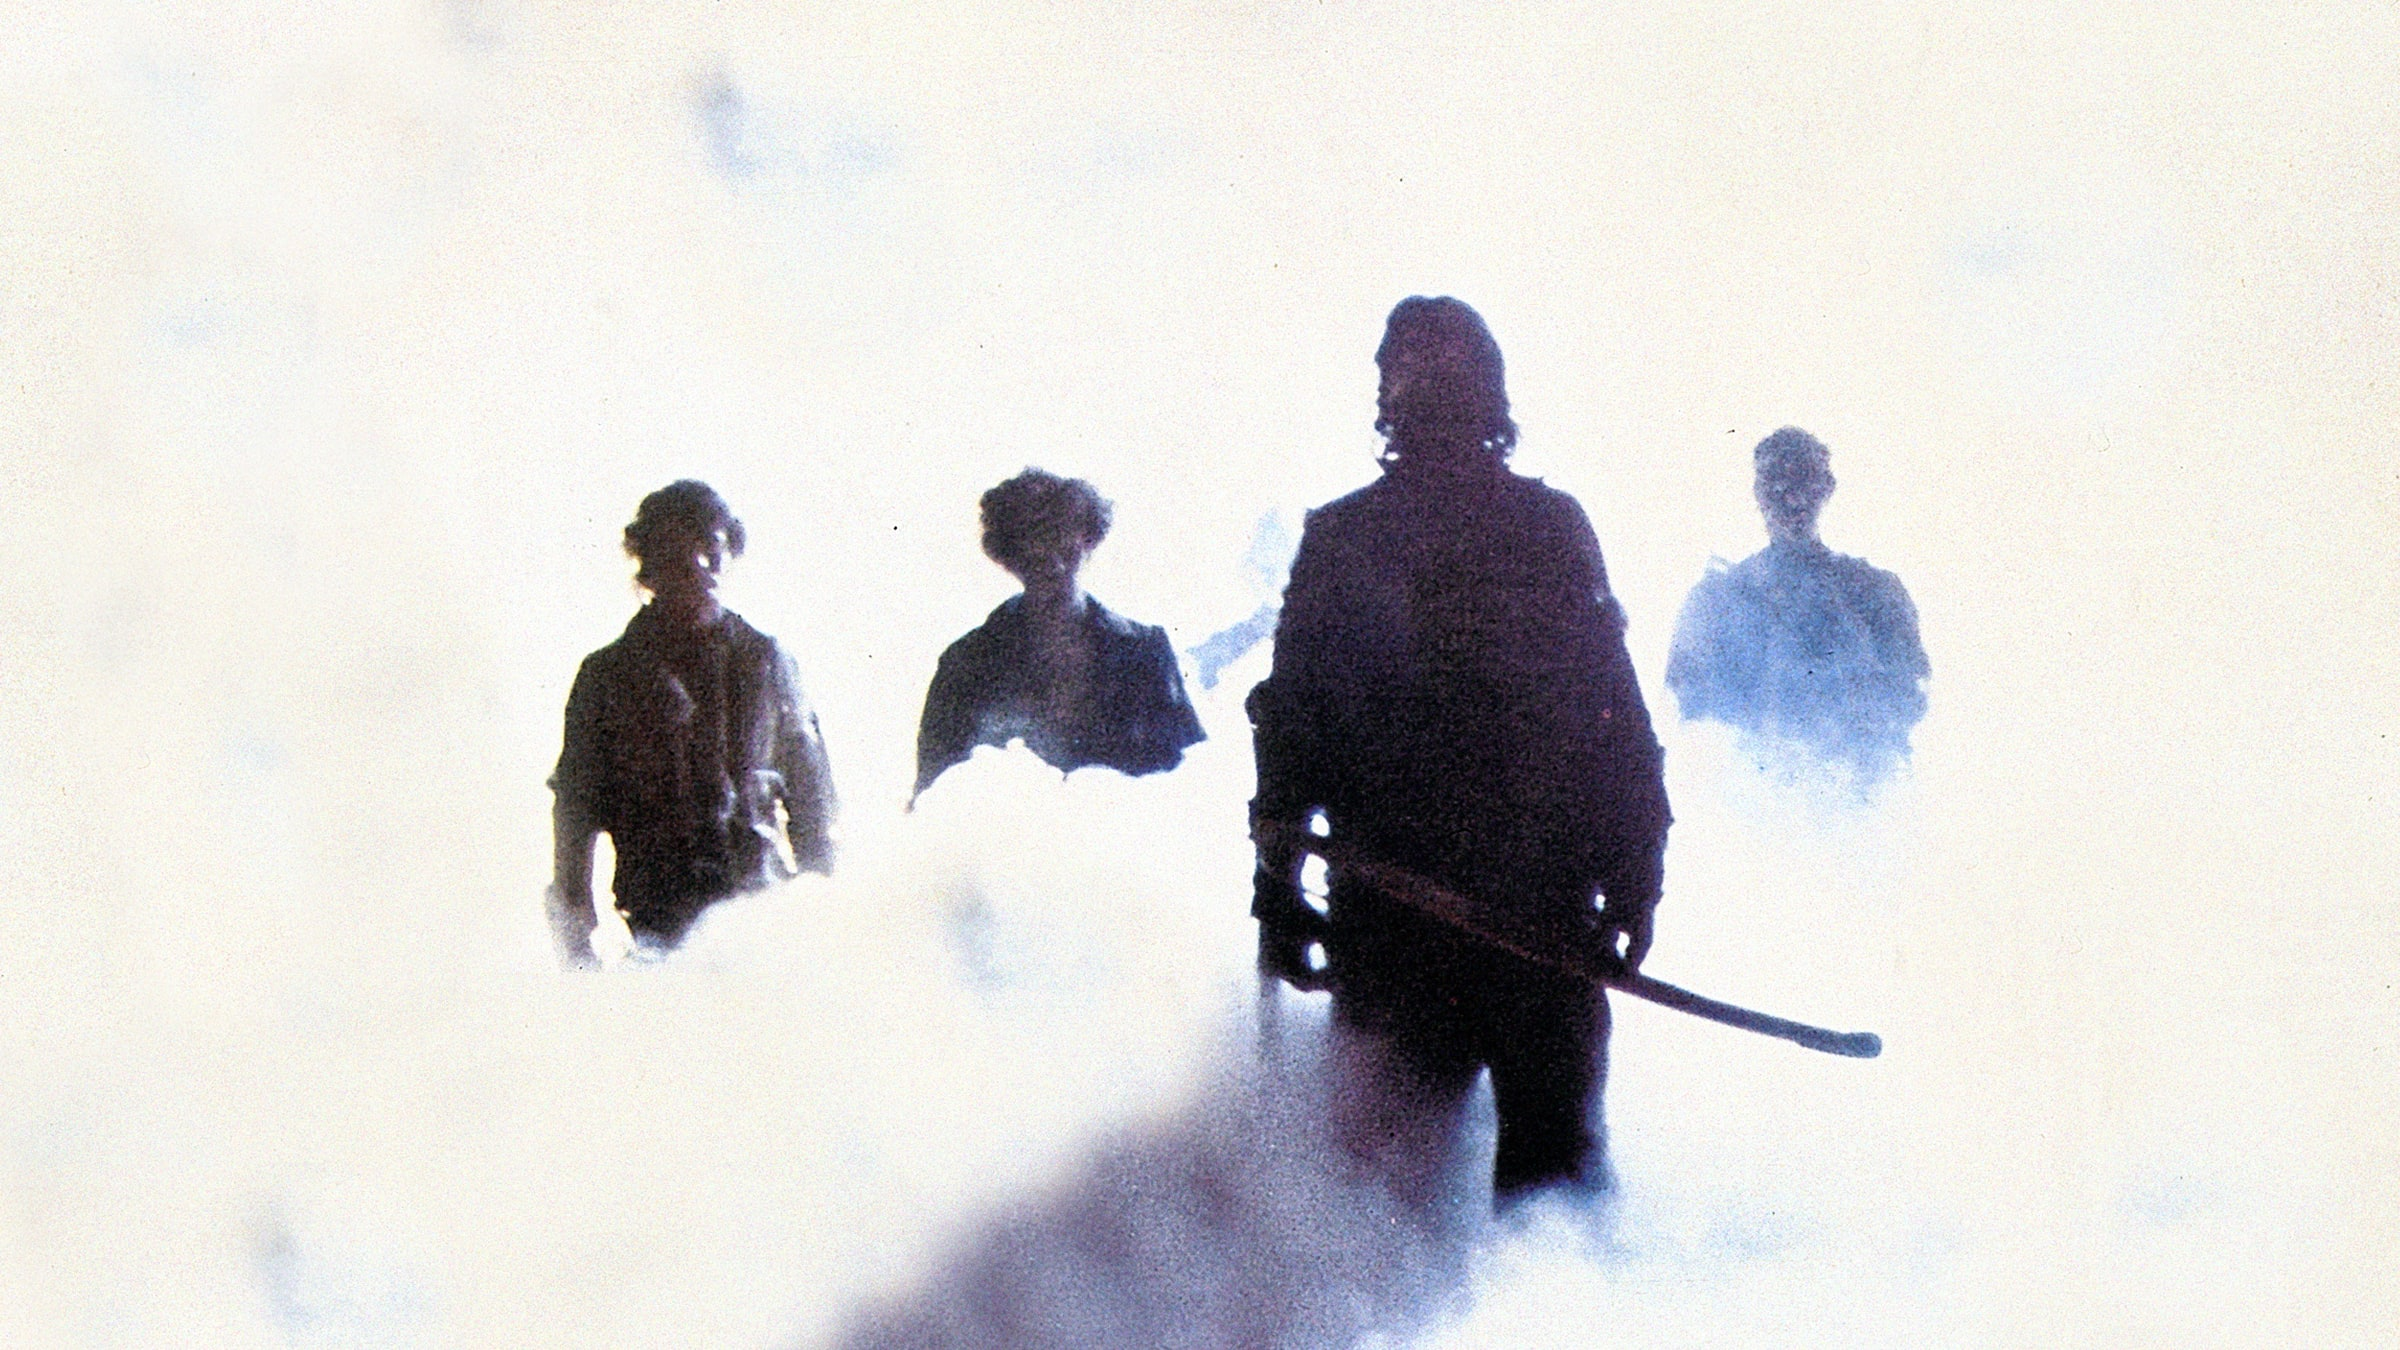 The Fog: There's something in the fog!